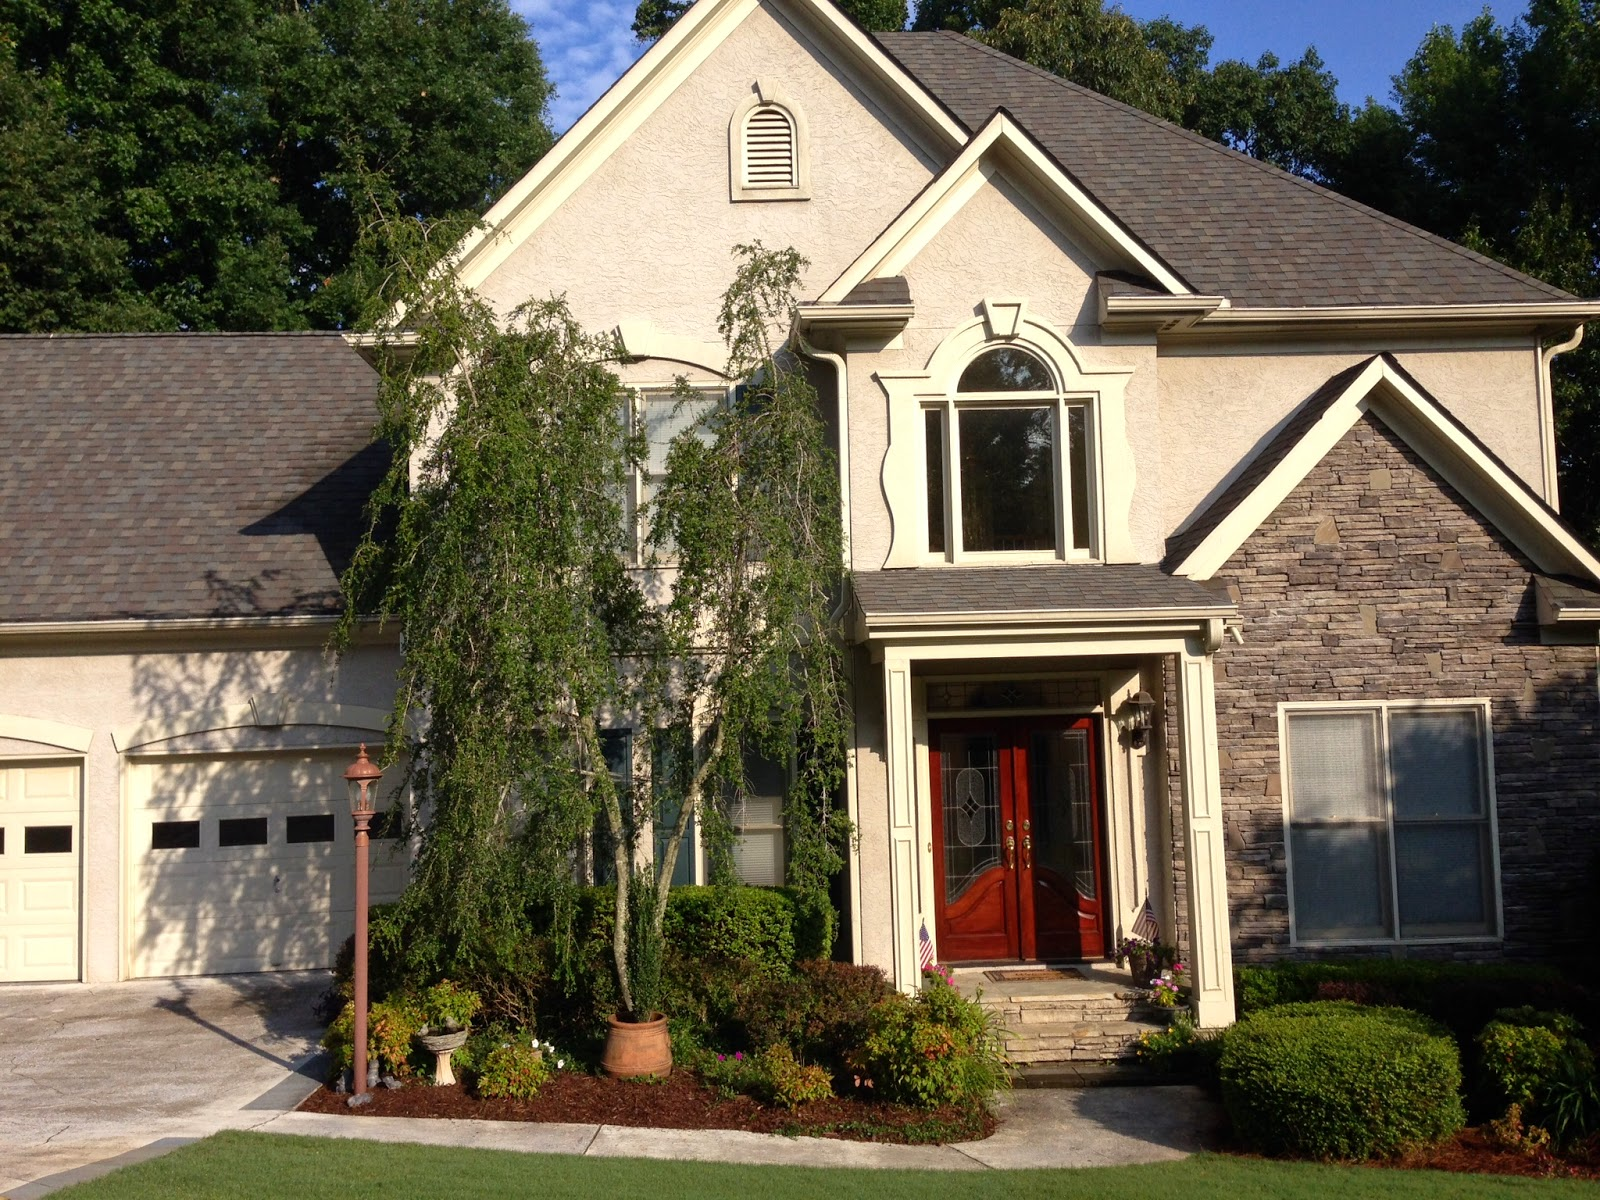 Sherwin williams basket beige exterior - Here Is My Question Can You Suggest A Sherwin Williams Color Or Colors You Would Use To Make The House Look Better And Tie In The Stone Front Door And